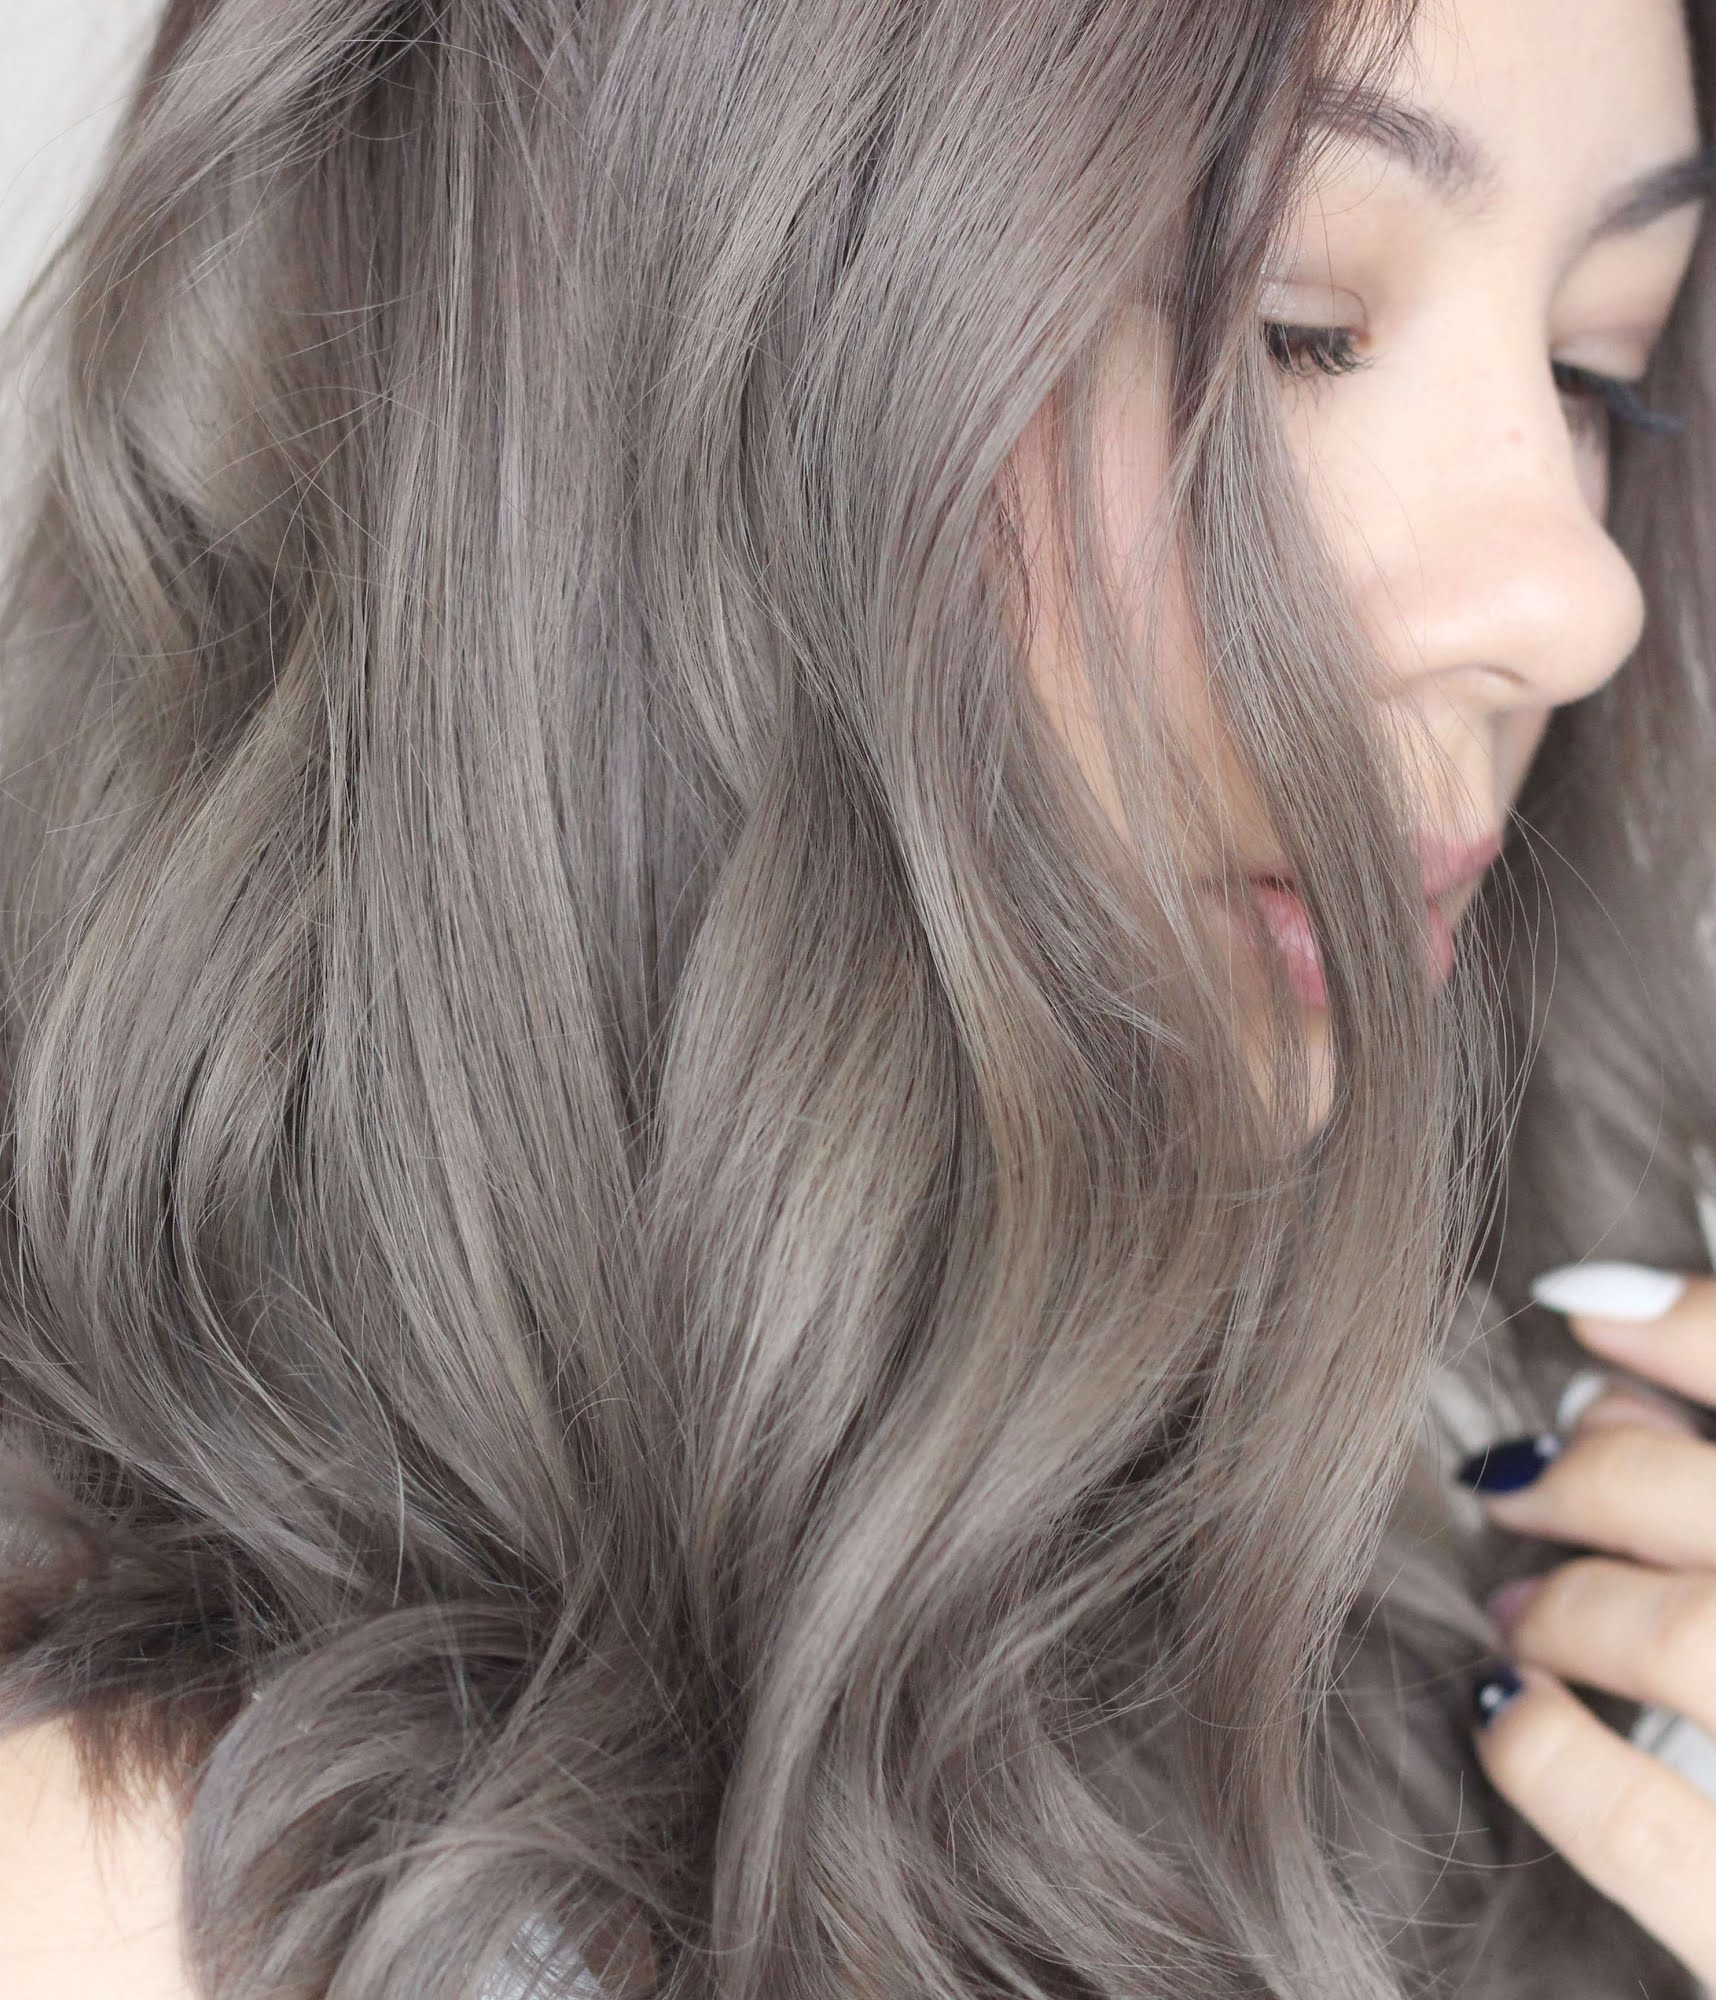 15 Stunning Silver Blonde Hair Color Ideas For 2019